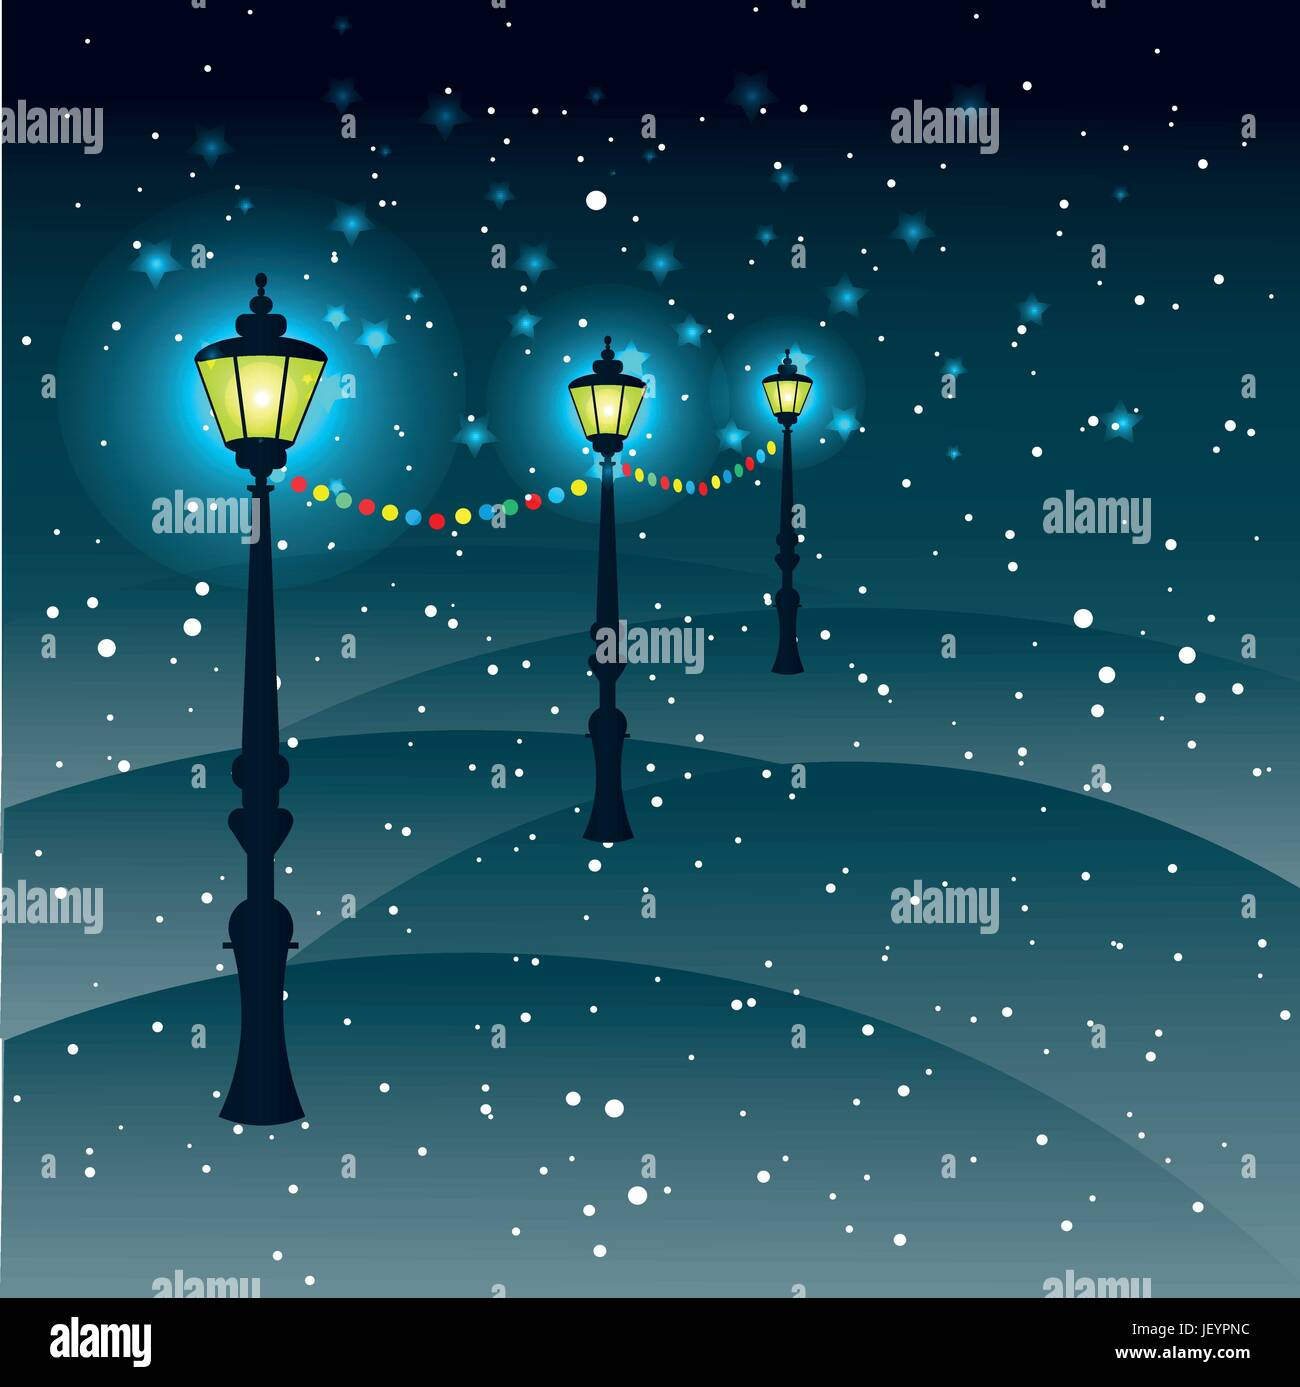 City Street Outdoor Christmas Decorations Snow Flakes